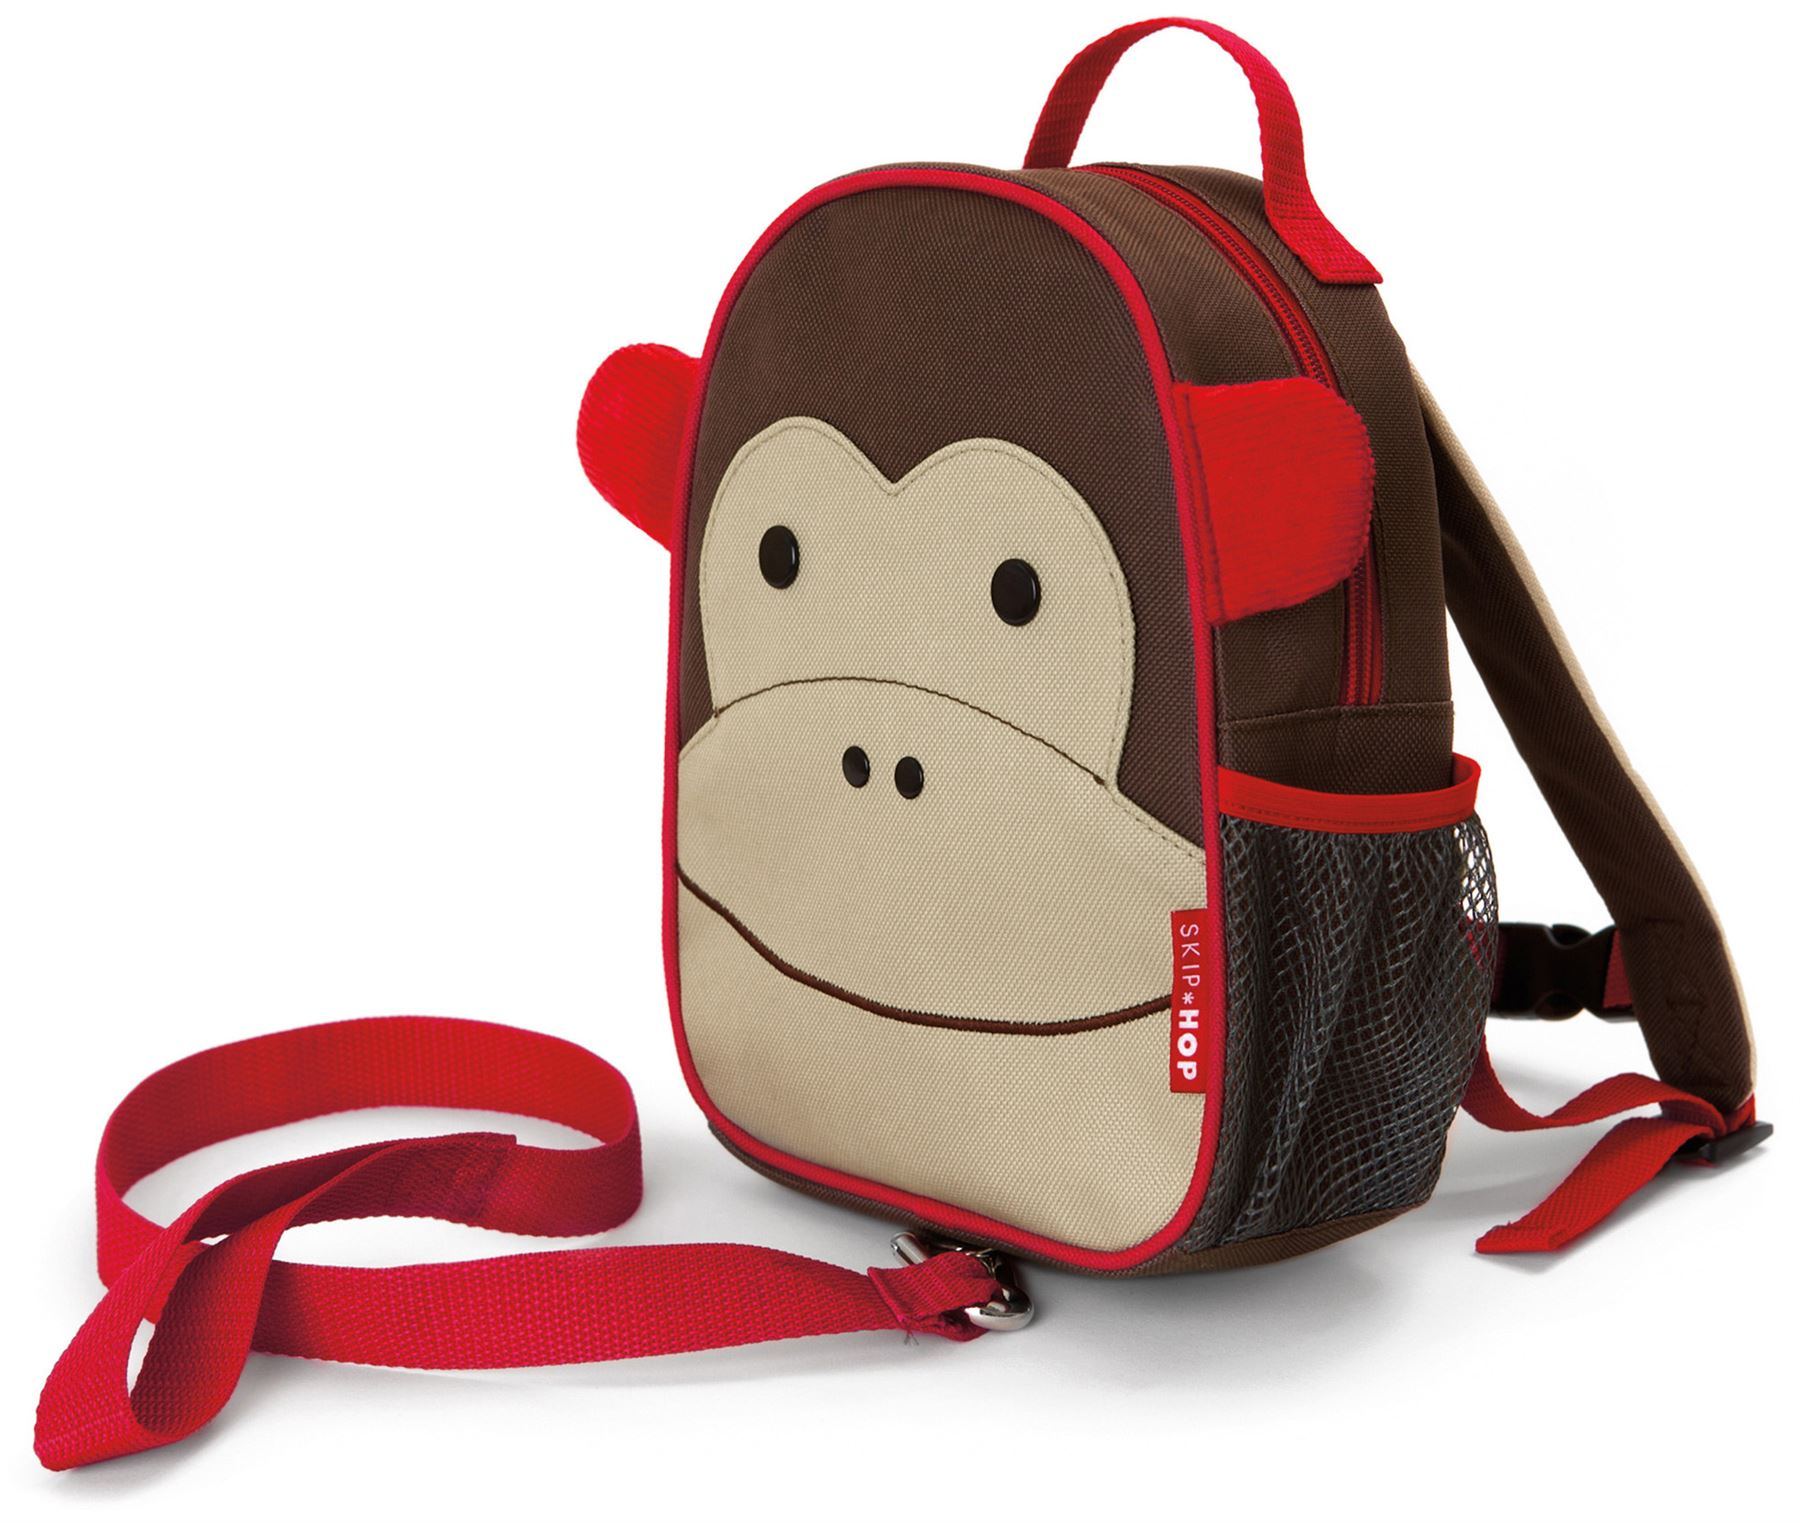 Clippasafe TODDLER DAYSACK WITH DETACHABLE LEAD REINS Backpack Baby Child BN